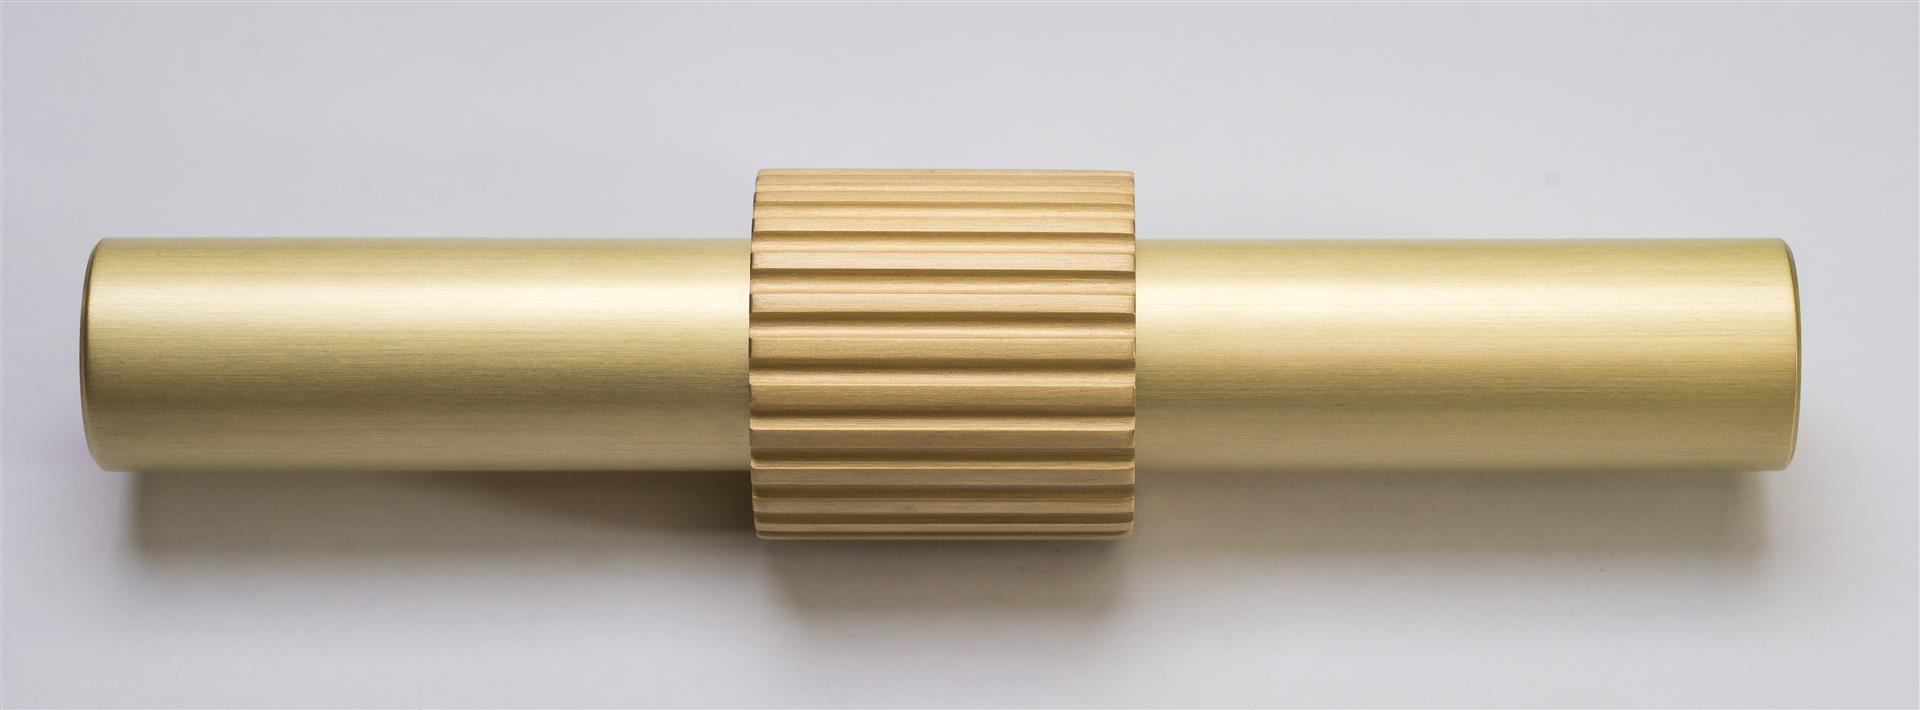 Custom Bronze Door and Drawer Pulls, Multiple Sizes and Finishes Available. Grained Satin and Lacquered Brass is Shown. This is a Standoff for a Wood, Leather or other round material.